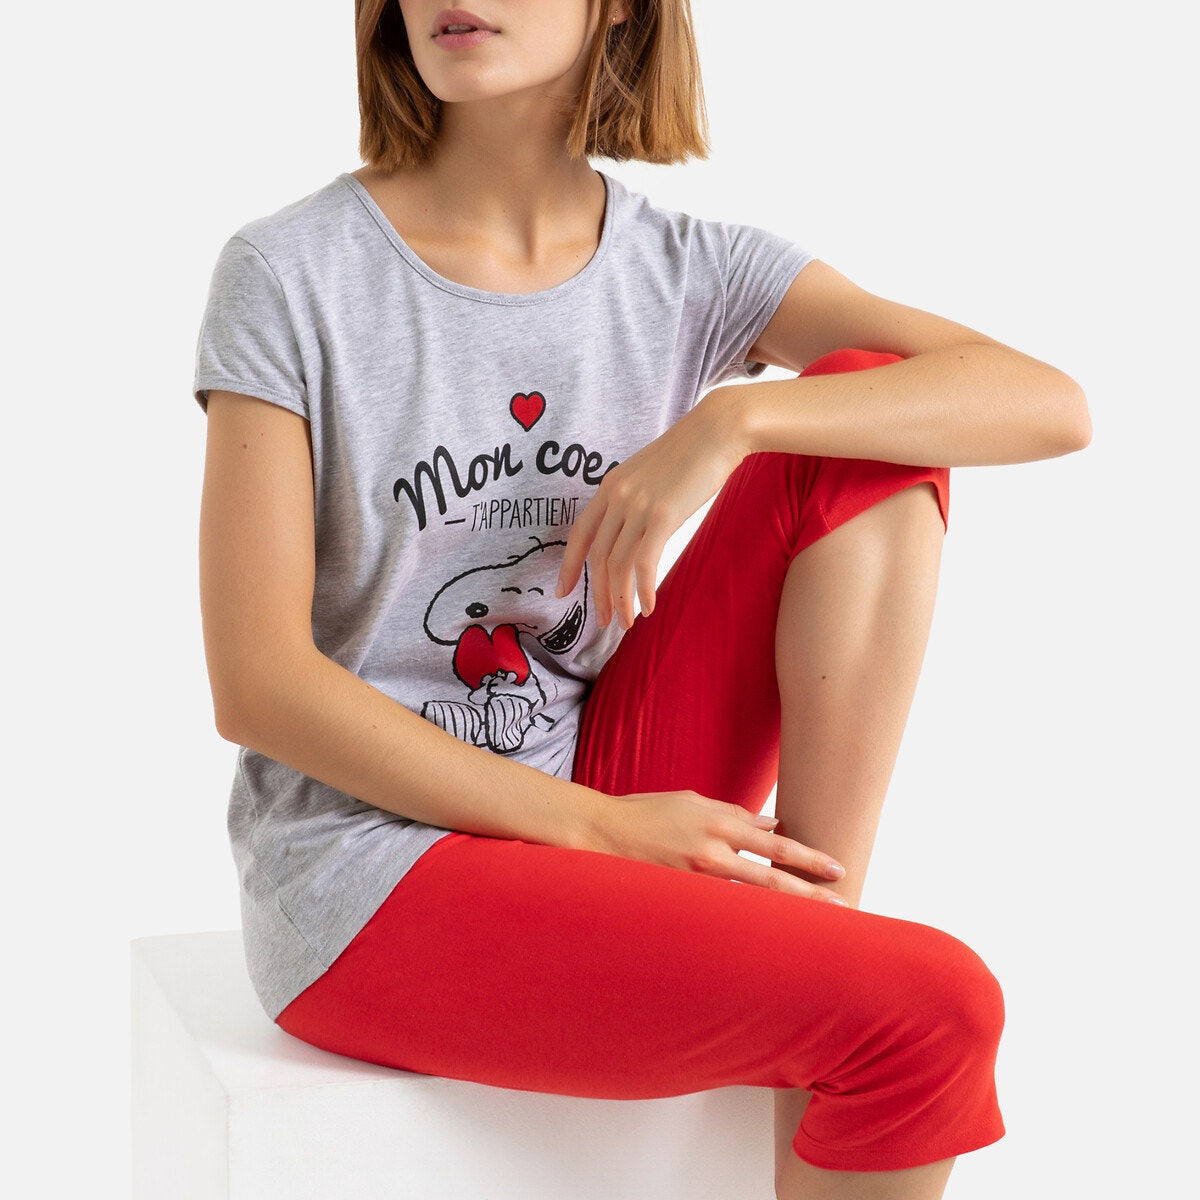 Snoopy - Πιτζάμα με κάπρι, Snoopy 350174117 - 3778